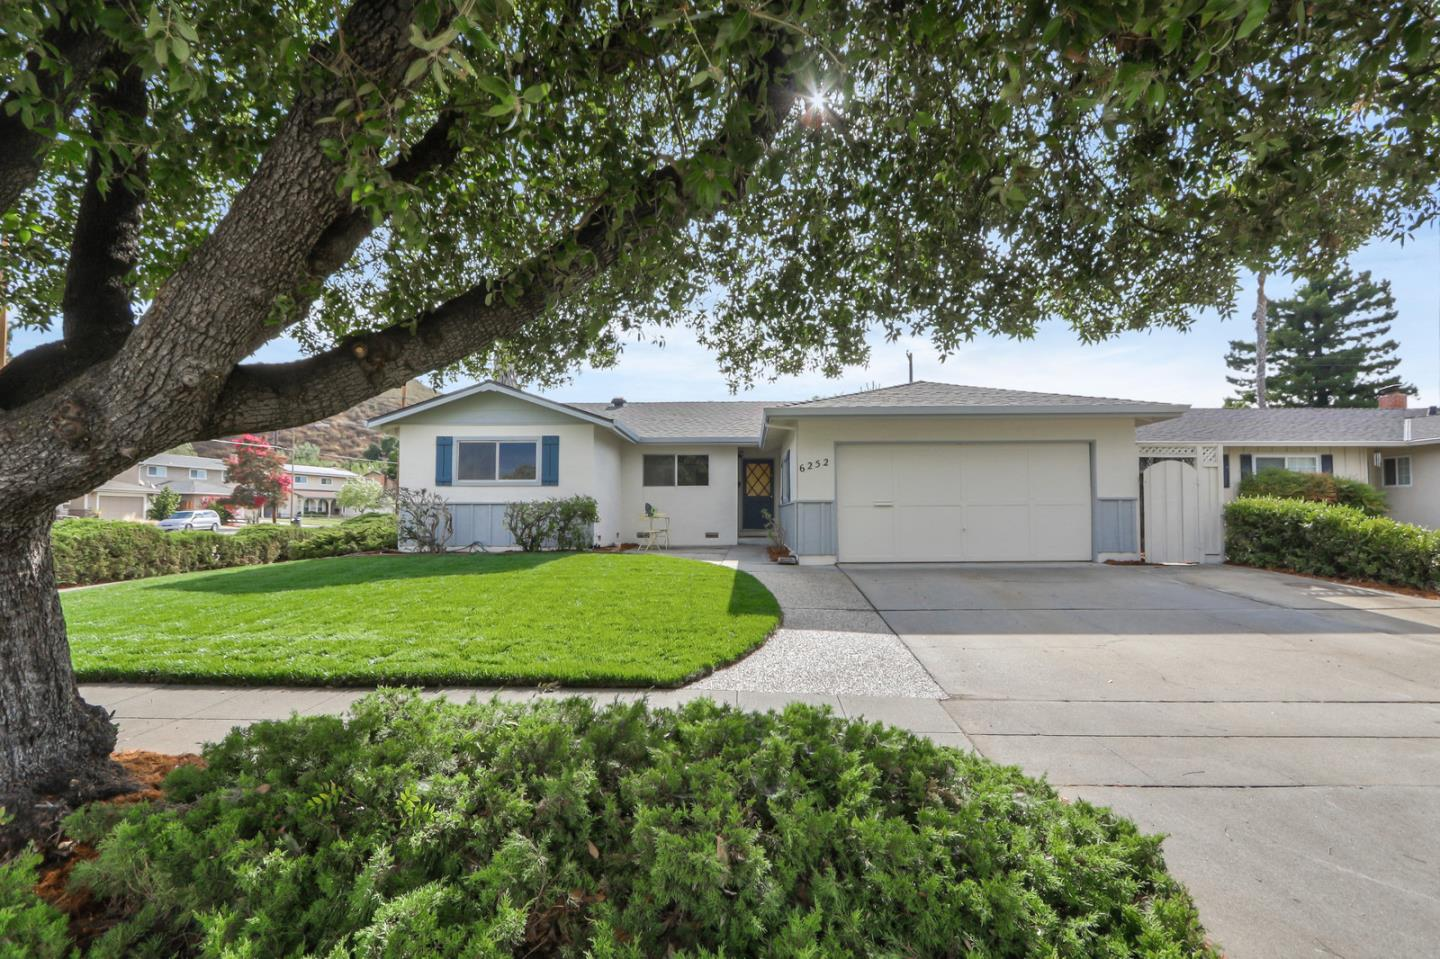 What a find!. Located in one of San Jose's finest neighborhoods, this wonderful Almaden Valley home sparkles. With new paint and refinished hardwood flooring, you could move in tomorrow or update to your taste. This great location, with all the benefits of a mature neighborhood, is perfect for any family.